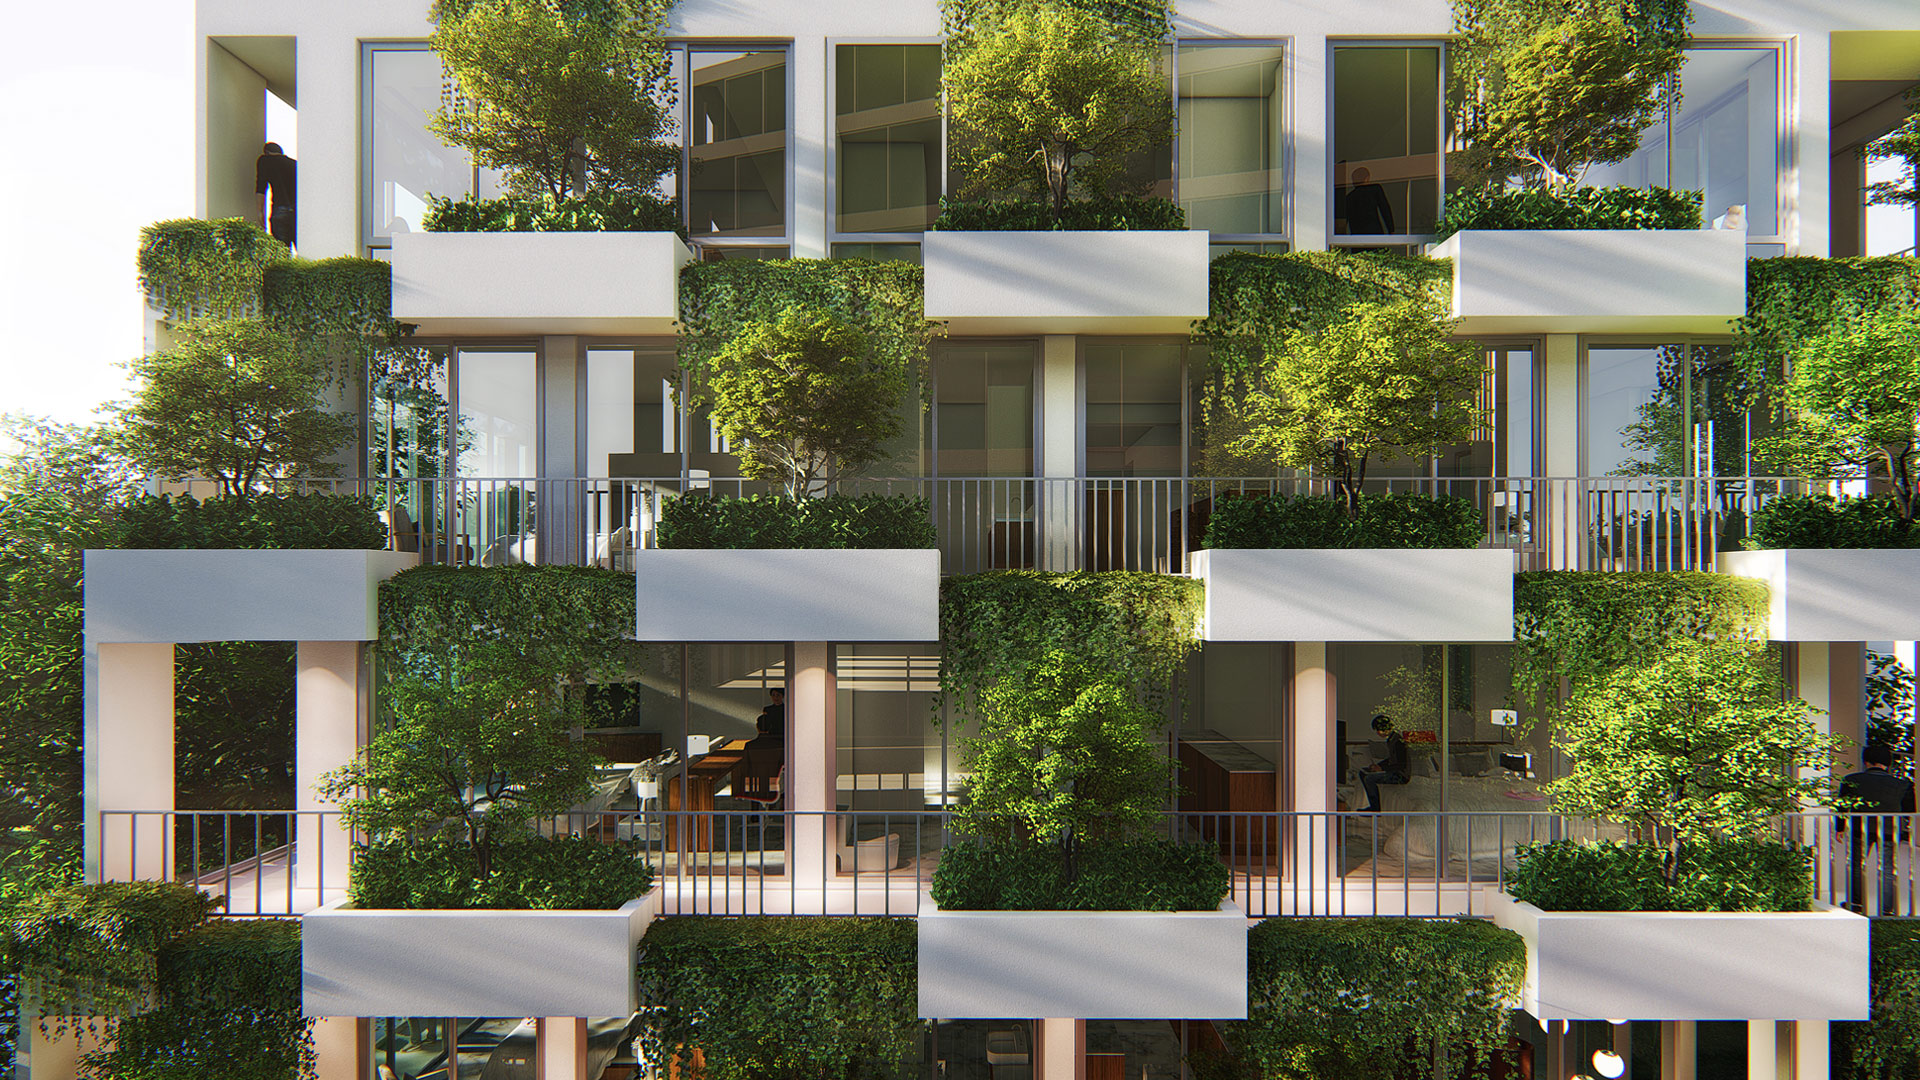 MAP_Design_Architecture_Residential_Architect_Kiran_Mathema_Balcony_Green_Facade